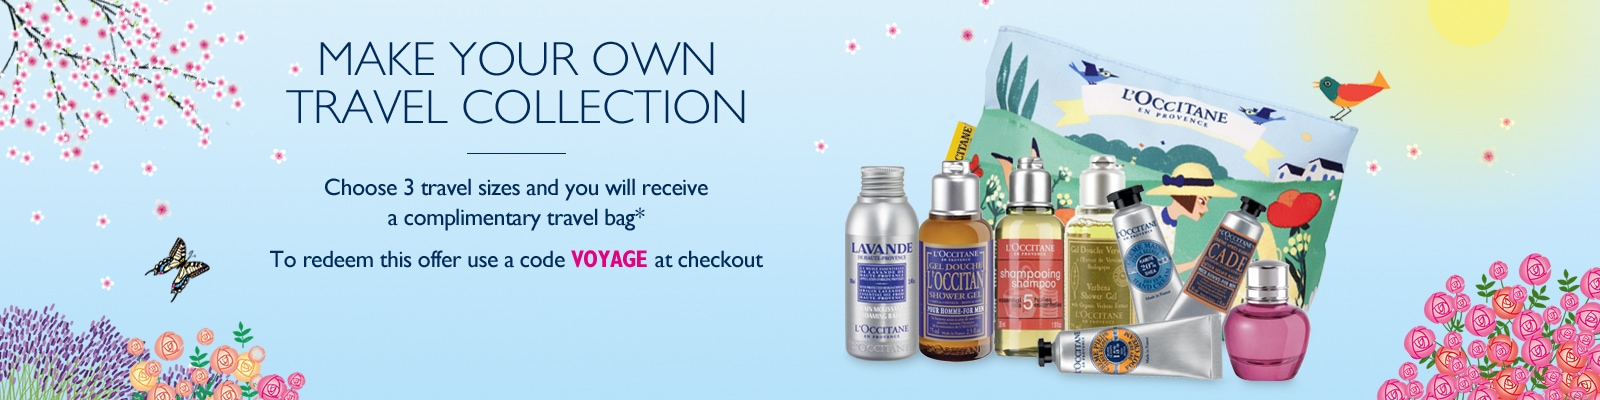 Your Gift Complimentary Travel Bag when you purchase 3 Travel Sizes